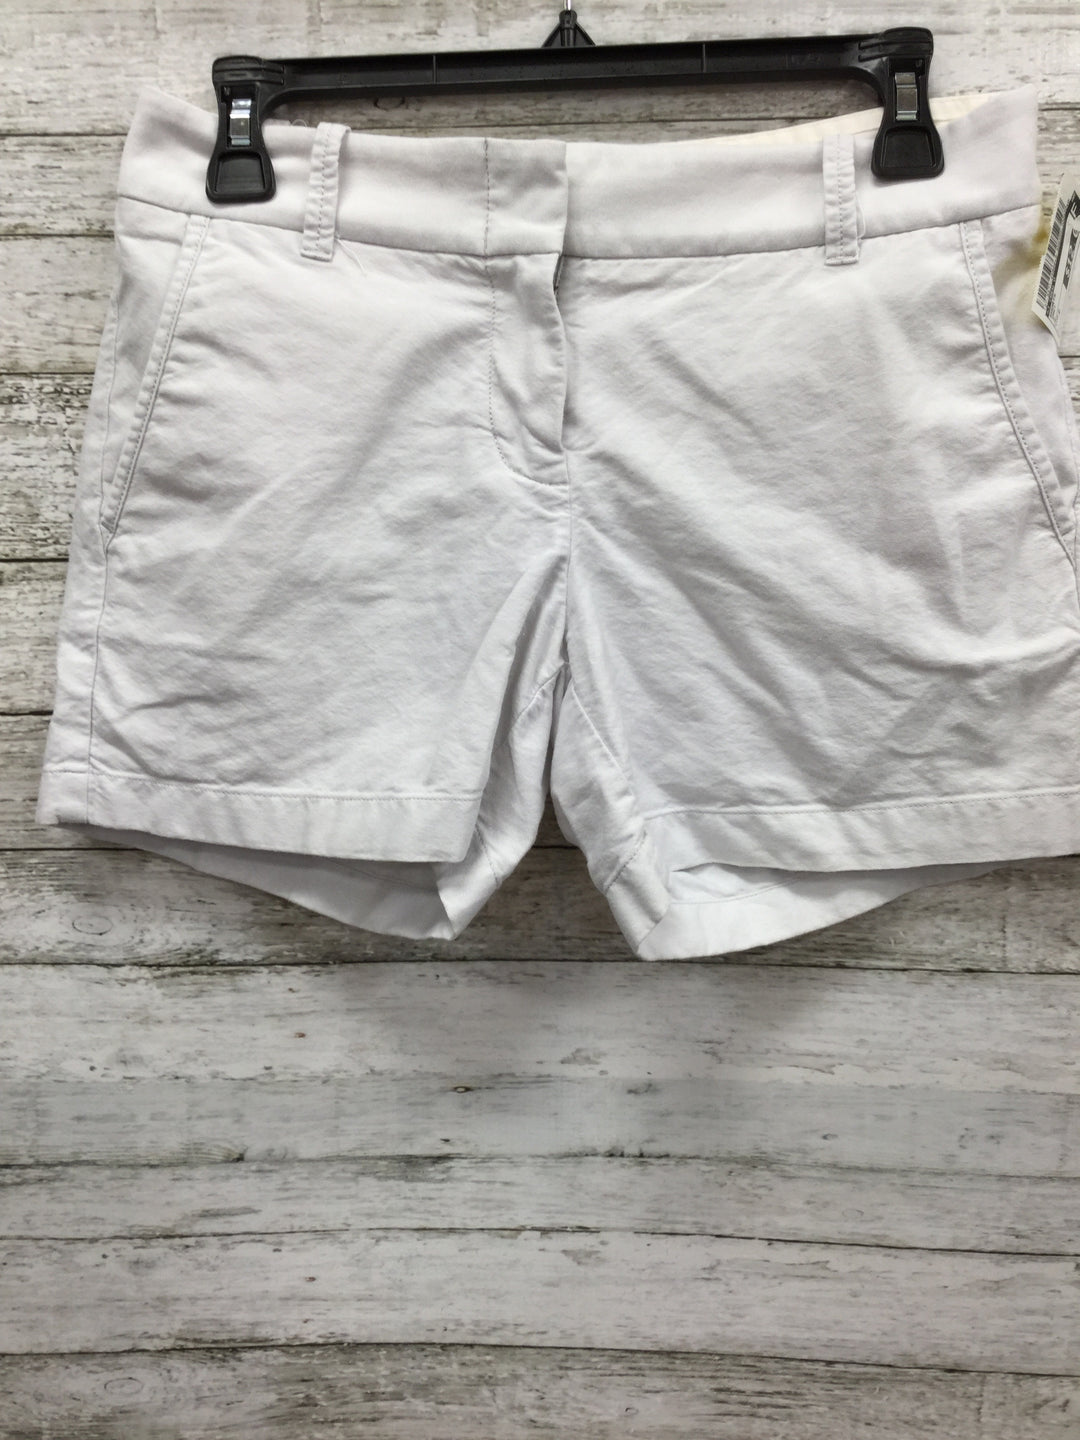 Primary Photo - BRAND: J CREW O <BR>STYLE: SHORTS <BR>COLOR: GREY <BR>SIZE: 2 <BR>SKU: 127-3371-45899